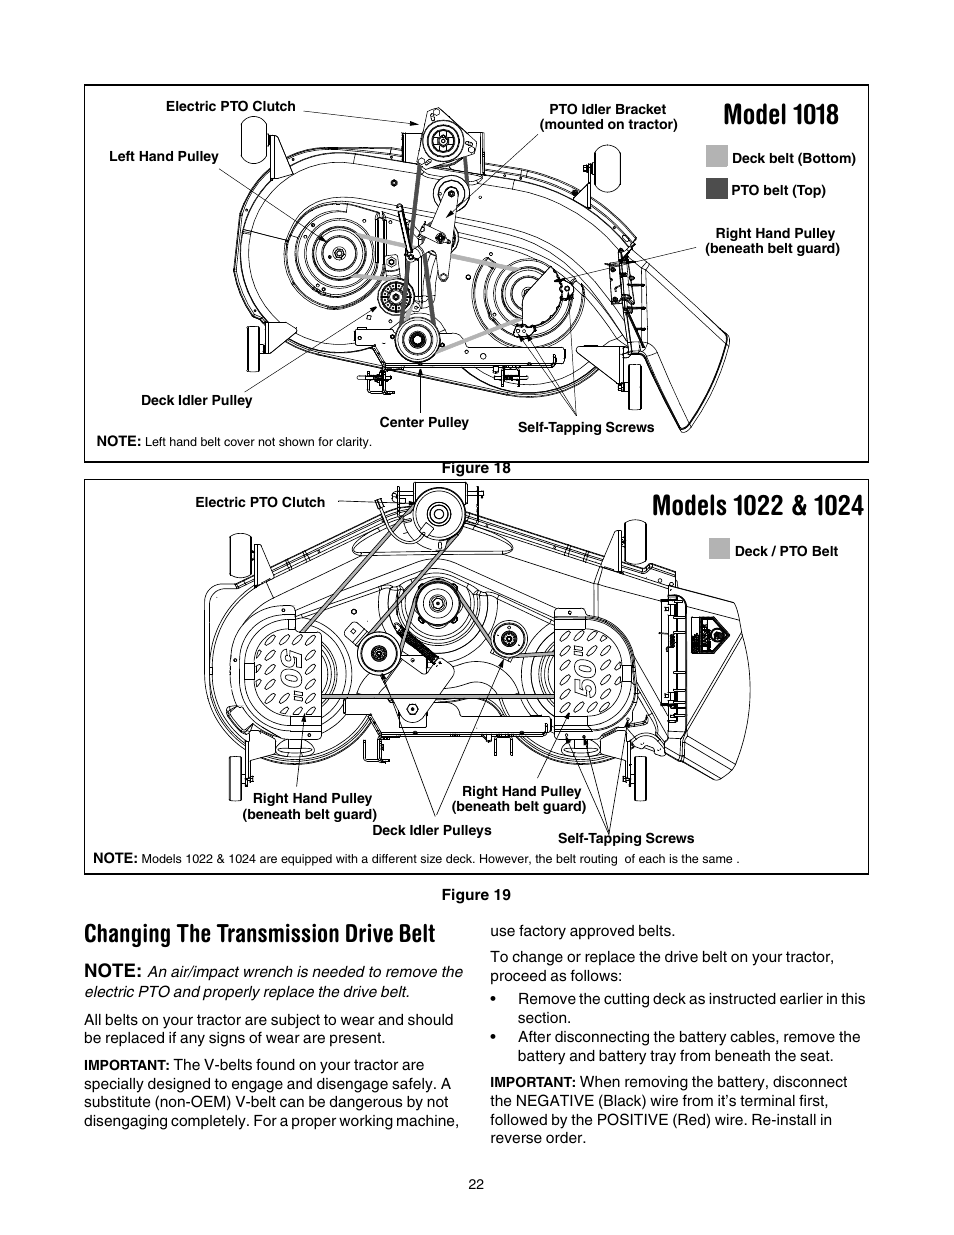 Cub Cadet Lt1018 Wiring Diagram Libraries 122 1018 Pto Data Diagrammodel Changing The Transmission Drive Belt